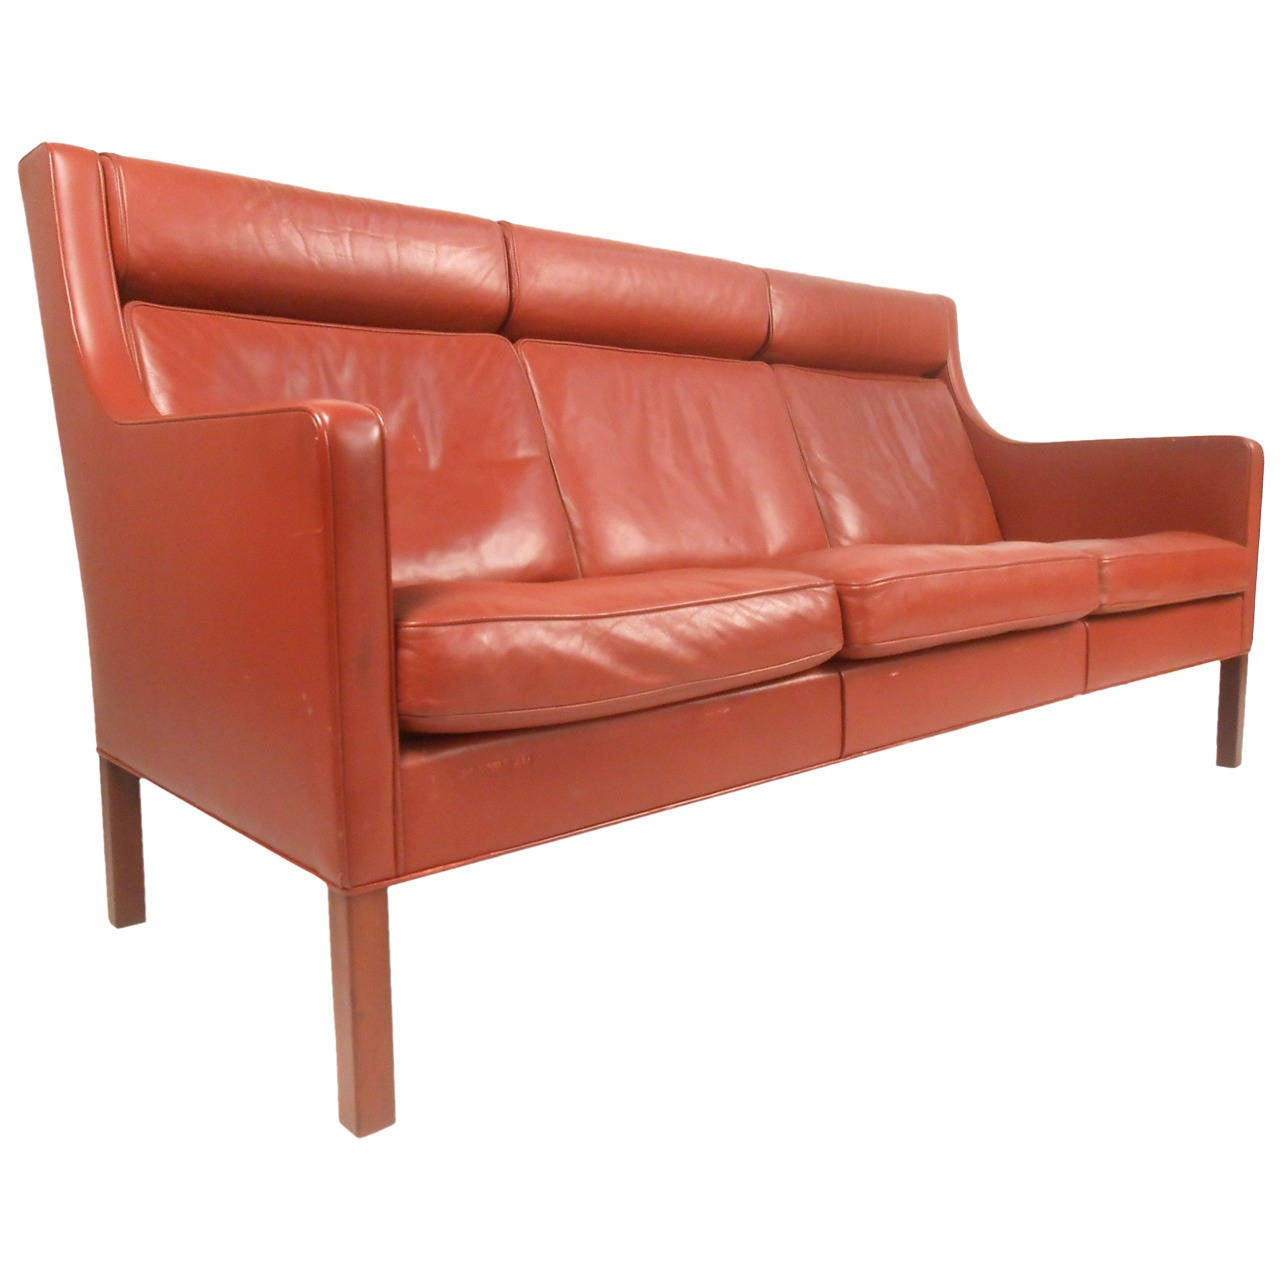 Børge Mogensen Leather Sofa